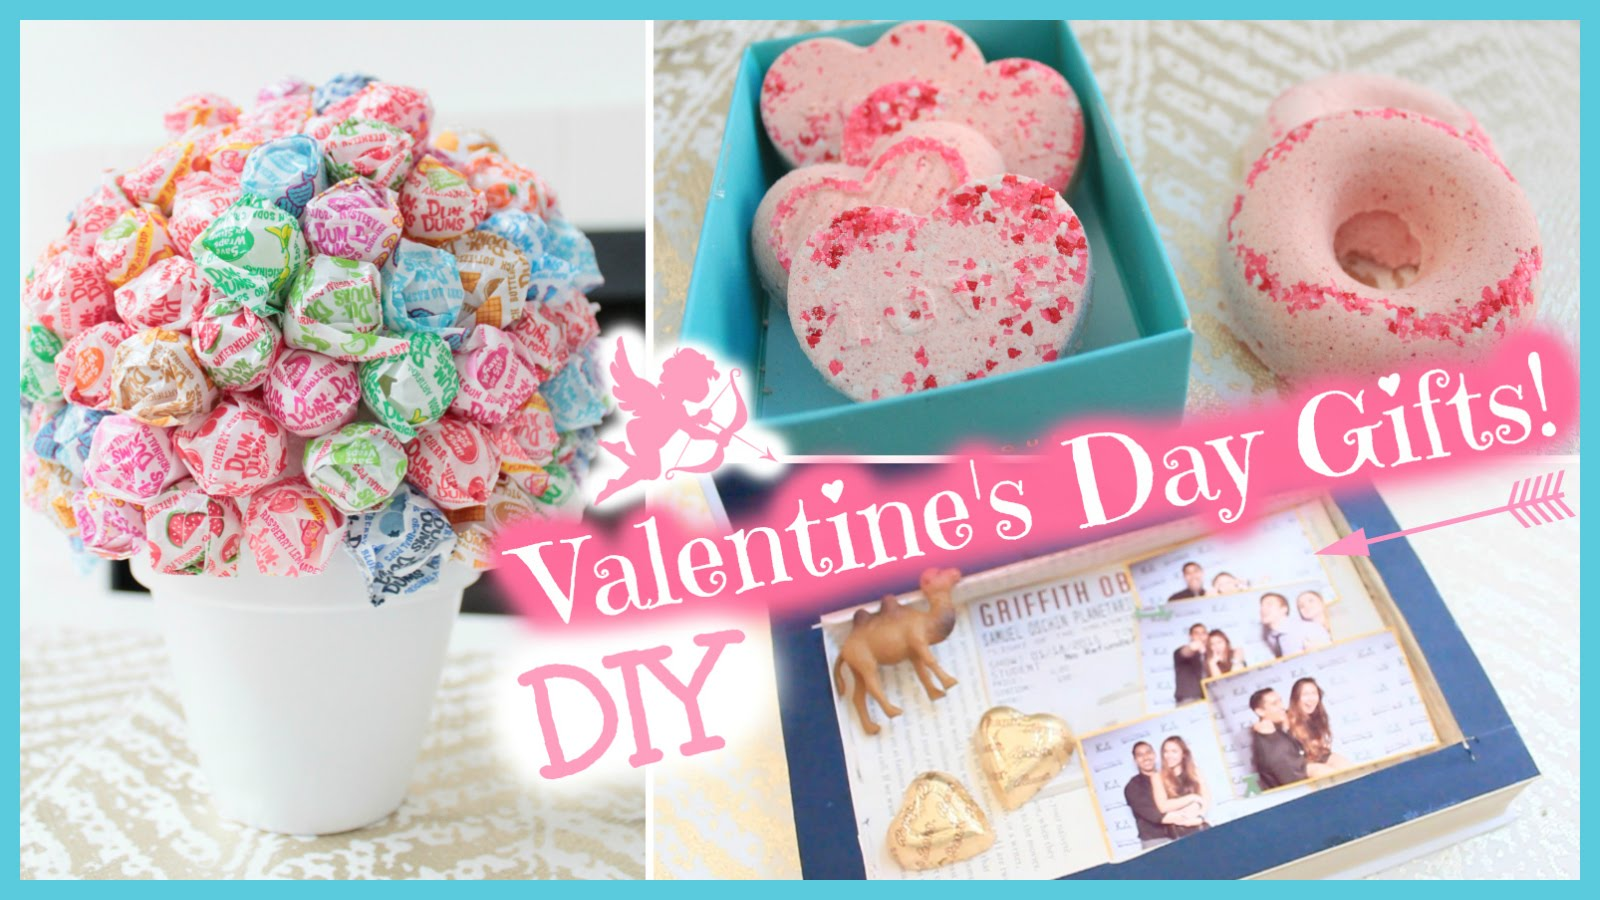 DIY Valentines Day Gift Ideas 2015 Everything 4 Christmas